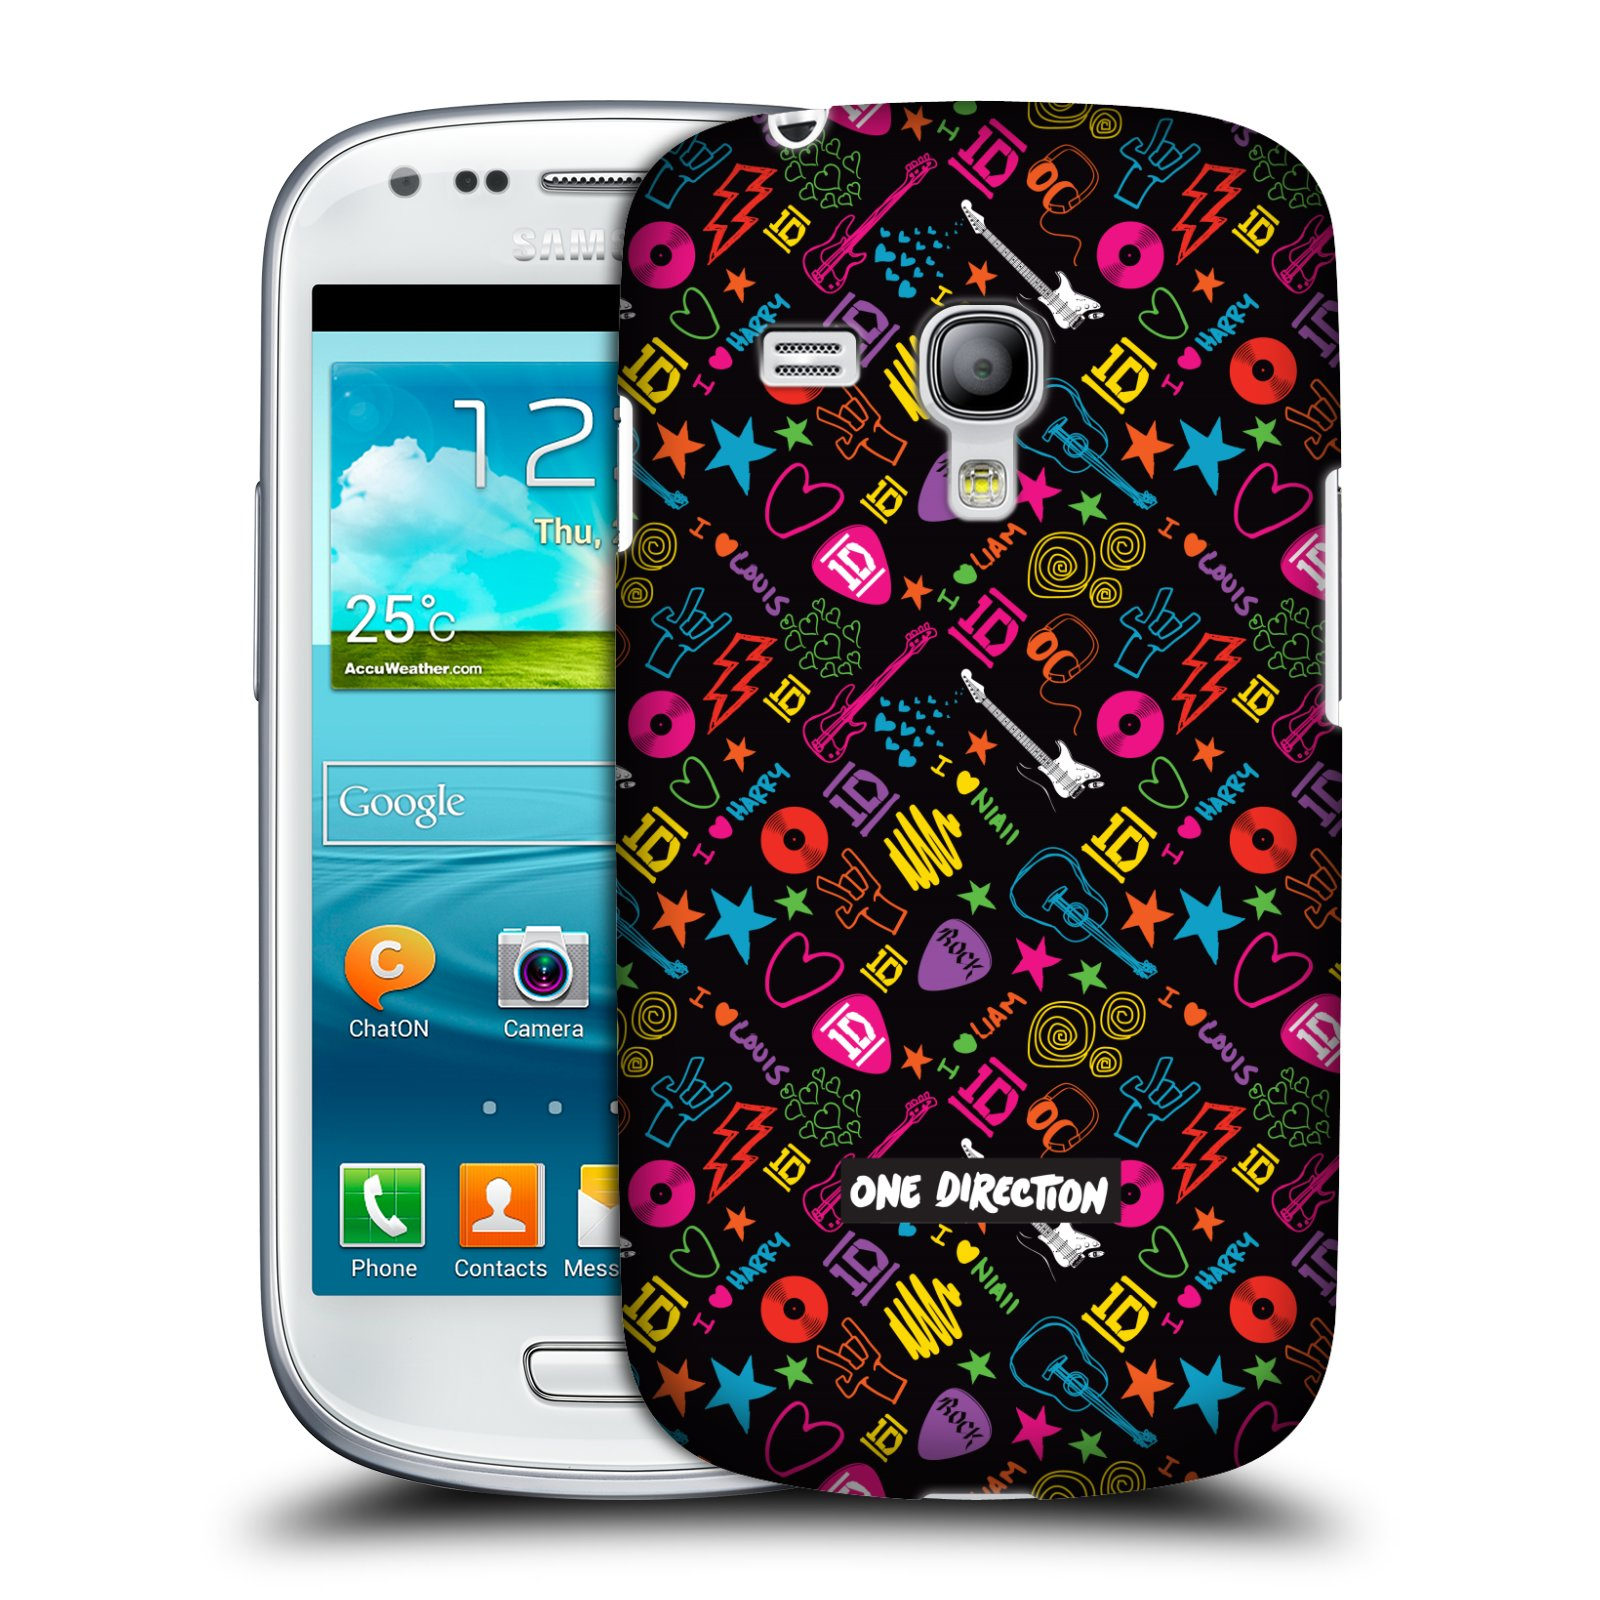 Official one direction icon patterns case for samsung galaxy s3 iii mini i8190 ebay - Fundas para samsung mini s3 ...